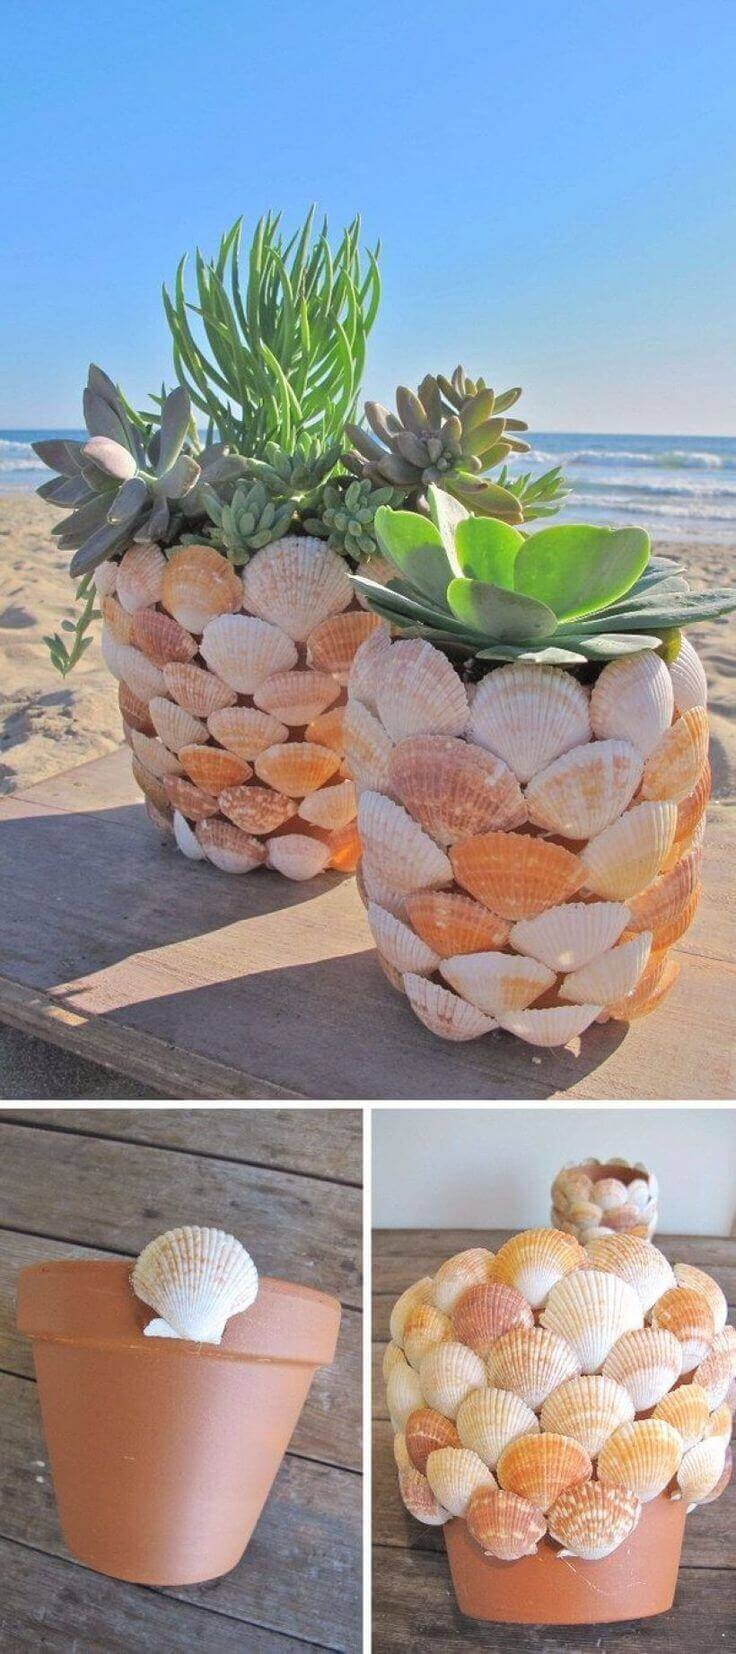 Shell Covered Seaside Plant Displays